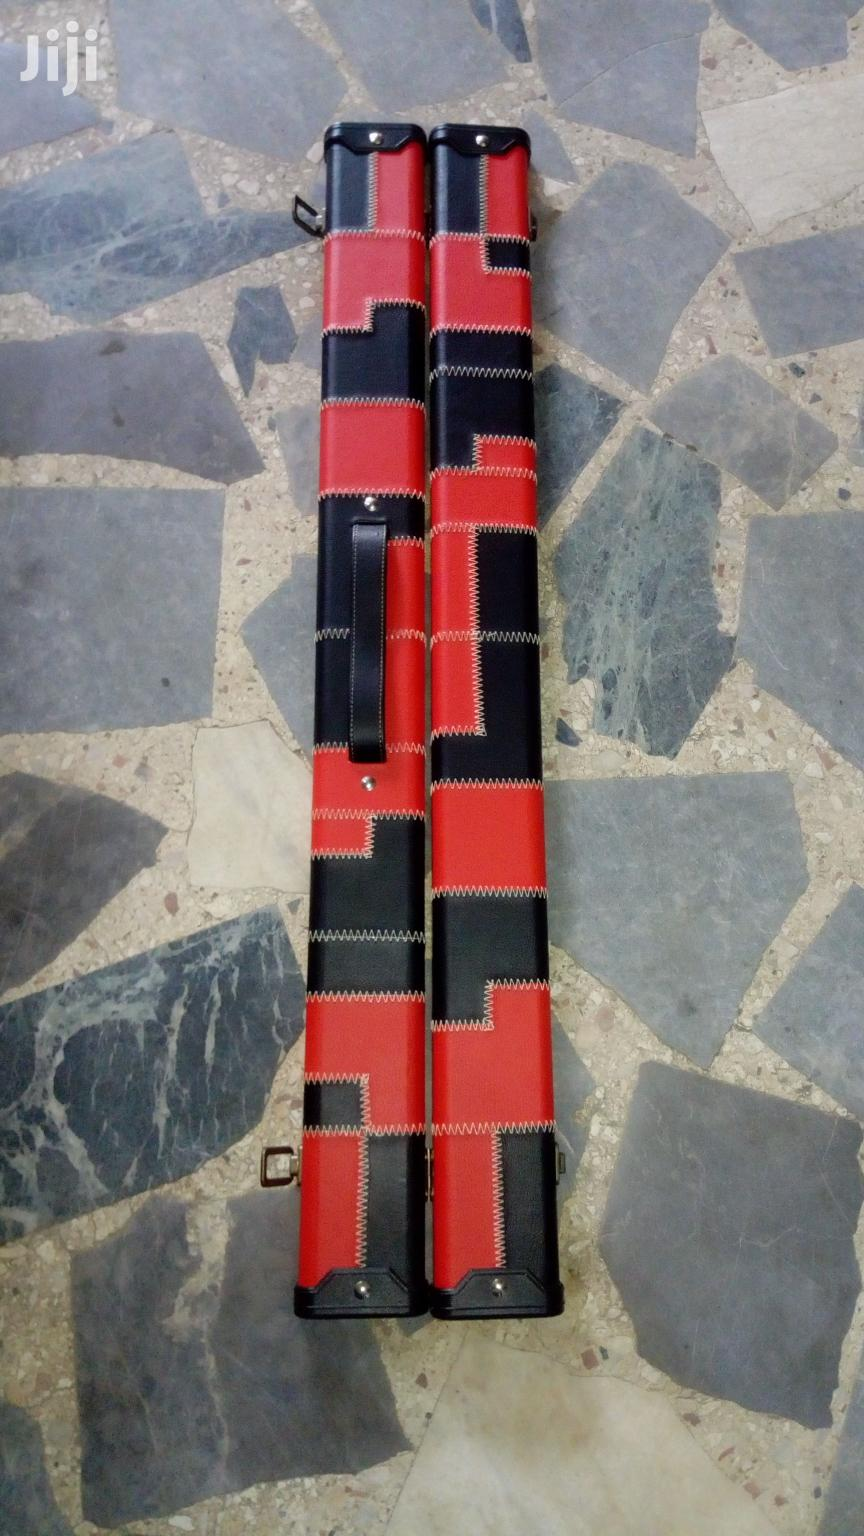 Original Pack for Snooker Stick   Sports Equipment for sale in Port-Harcourt, Rivers State, Nigeria